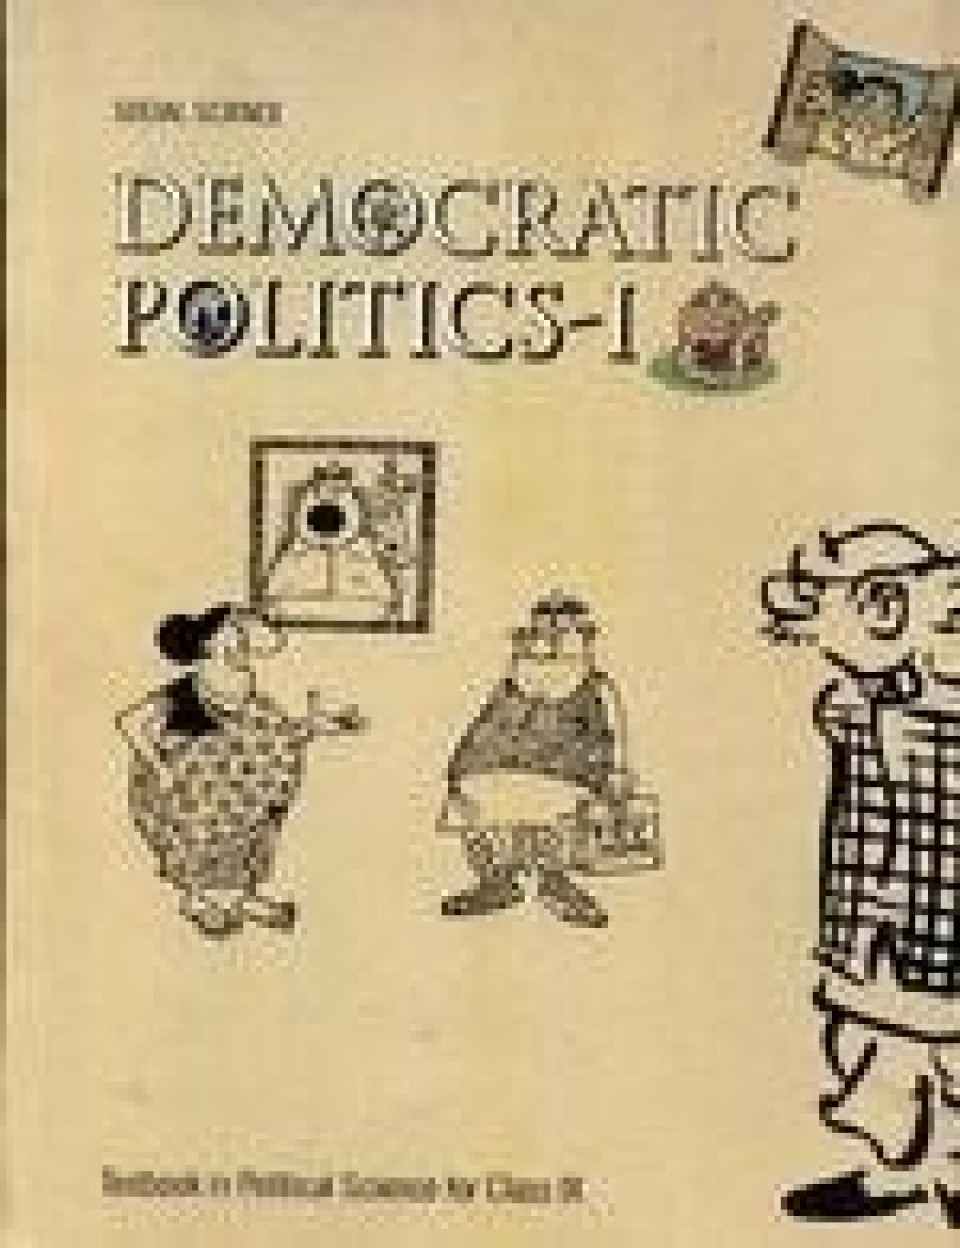 class x democratic politics book Able of content foreword a letter for you how to use this book democracy in the contemporary world what if democracy why democracy constitutional design electoral politics working of institutions democratic rights.